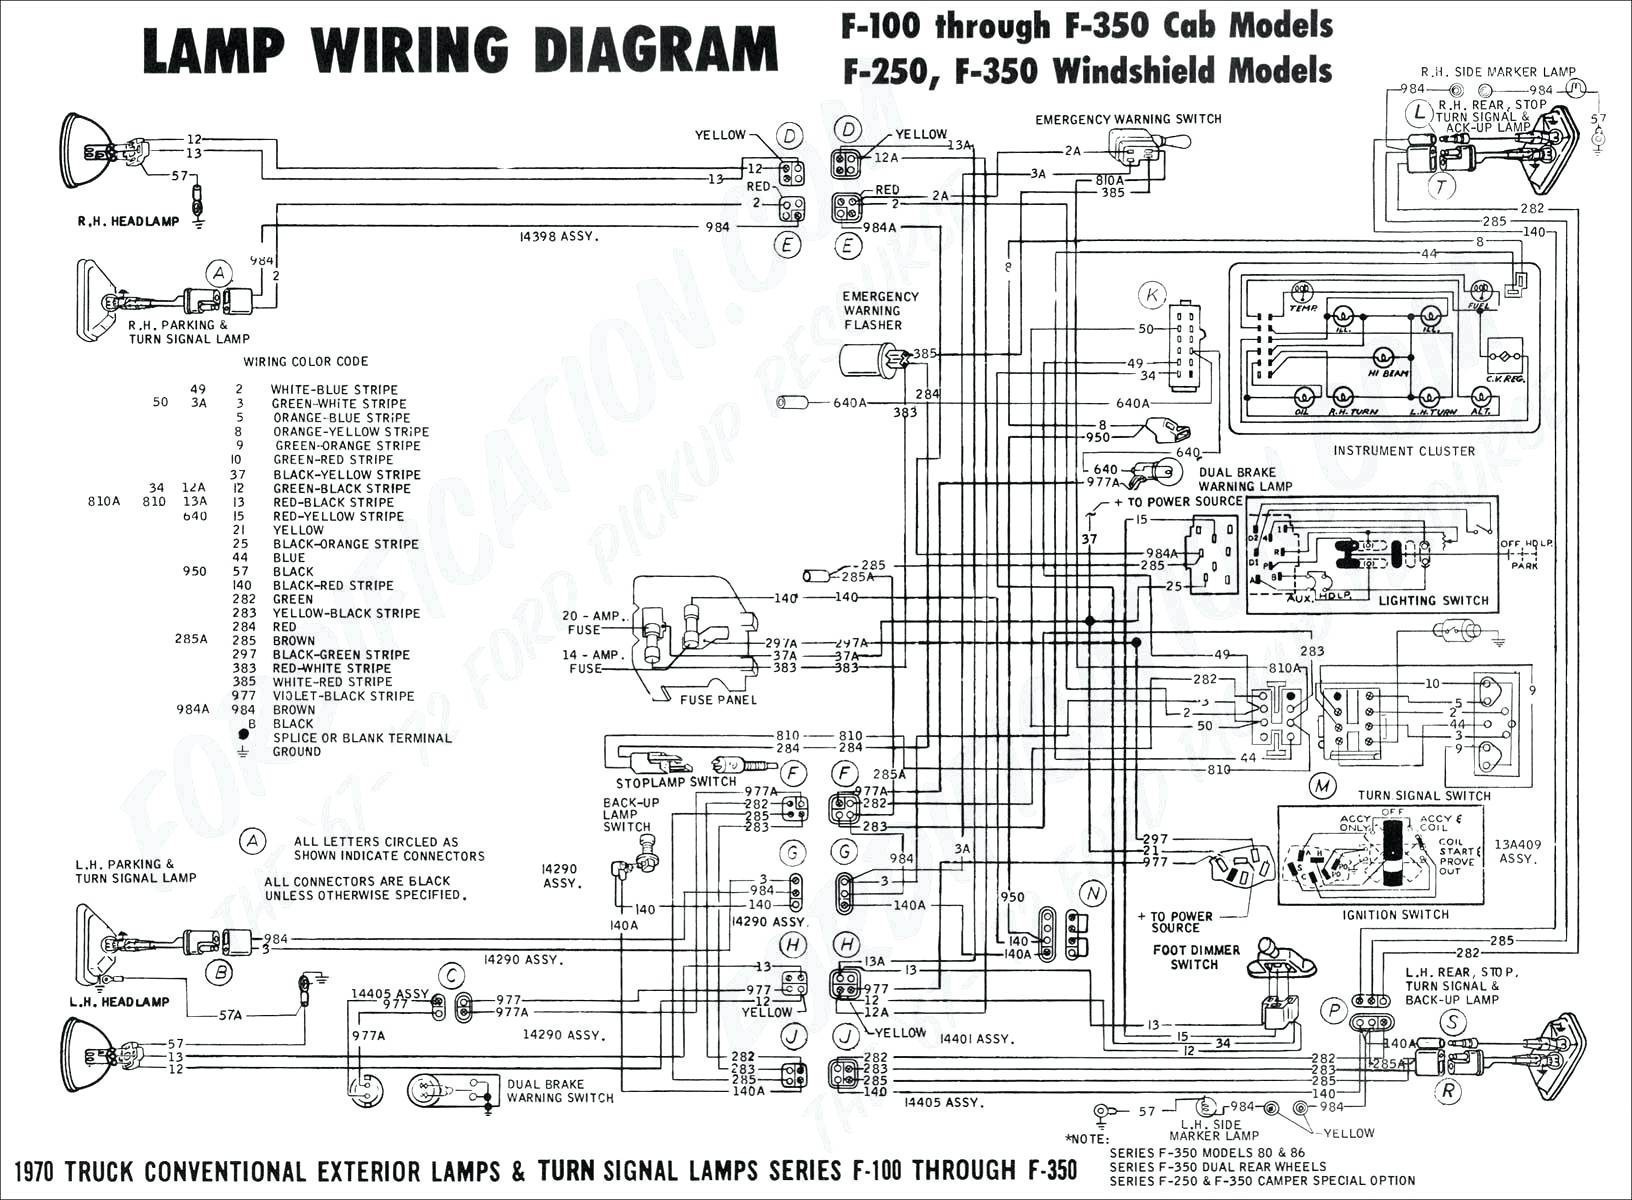 2001 ford Taurus Engine Parts Diagram 2003 ford Expedition Cargo Rack Archives Simple Wiring Diagram Of 2001 ford Taurus Engine Parts Diagram